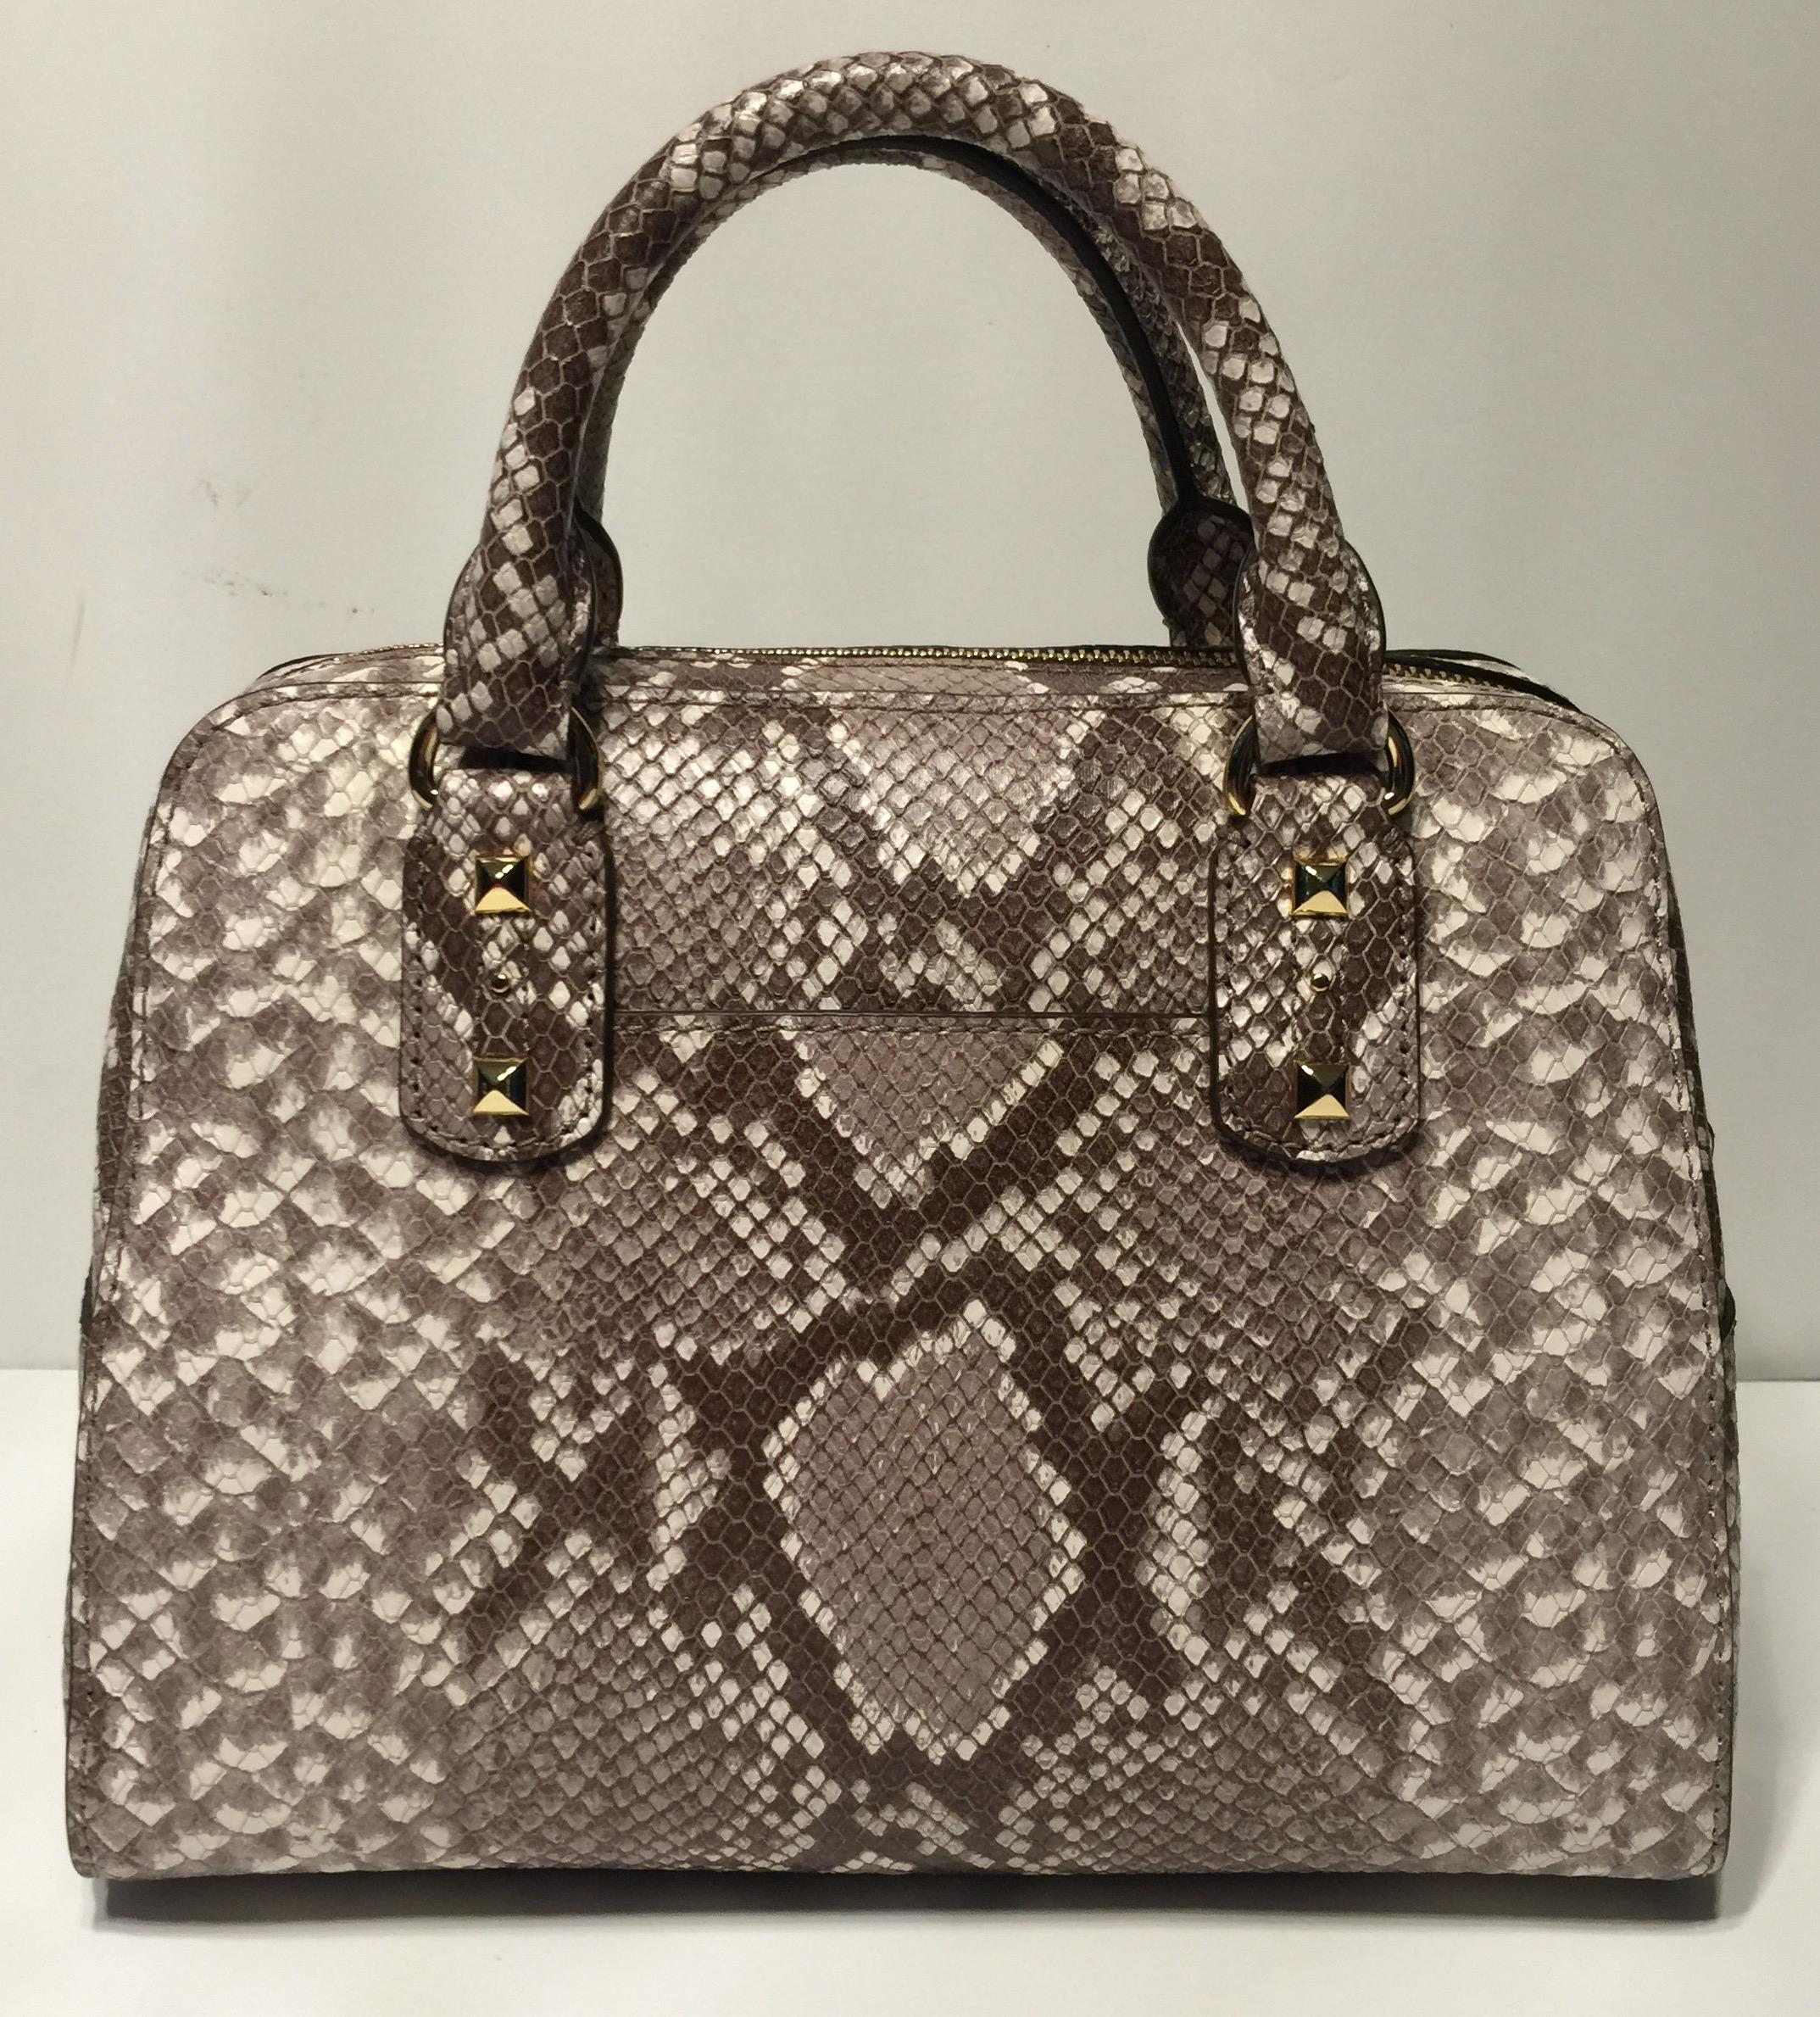 71507b4f7a05 ... best price michael kors stud small handbag dark sand python saffiano  leather satchel tradesy 0443a c333a